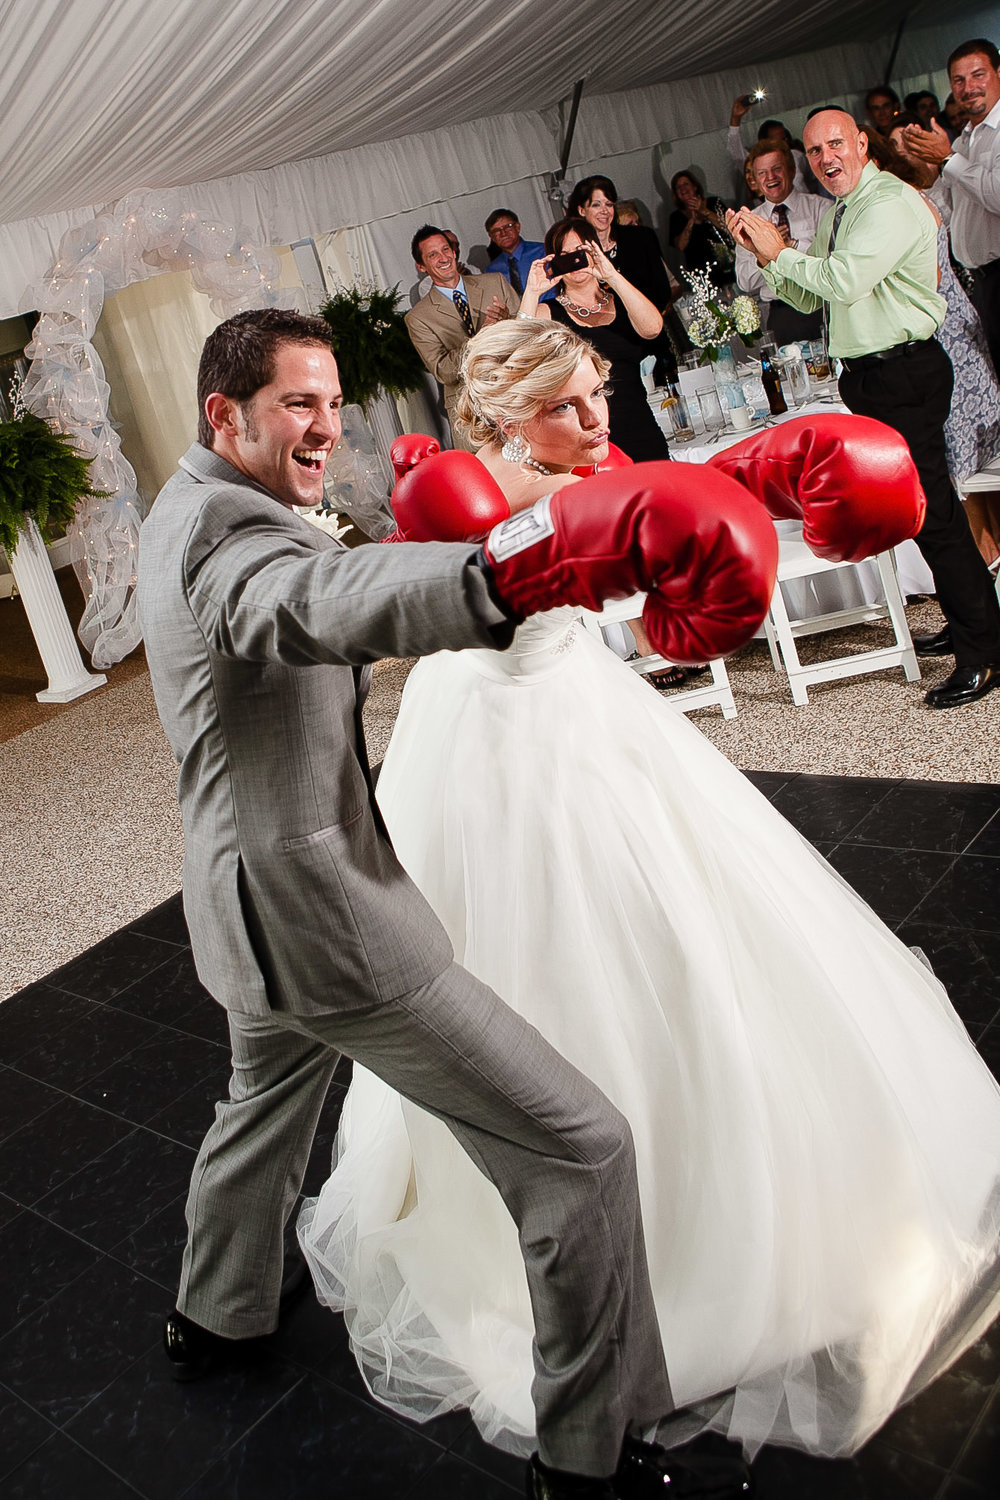 Robb McCormick Photography - Wedding Photographer (41 of 128).jpg